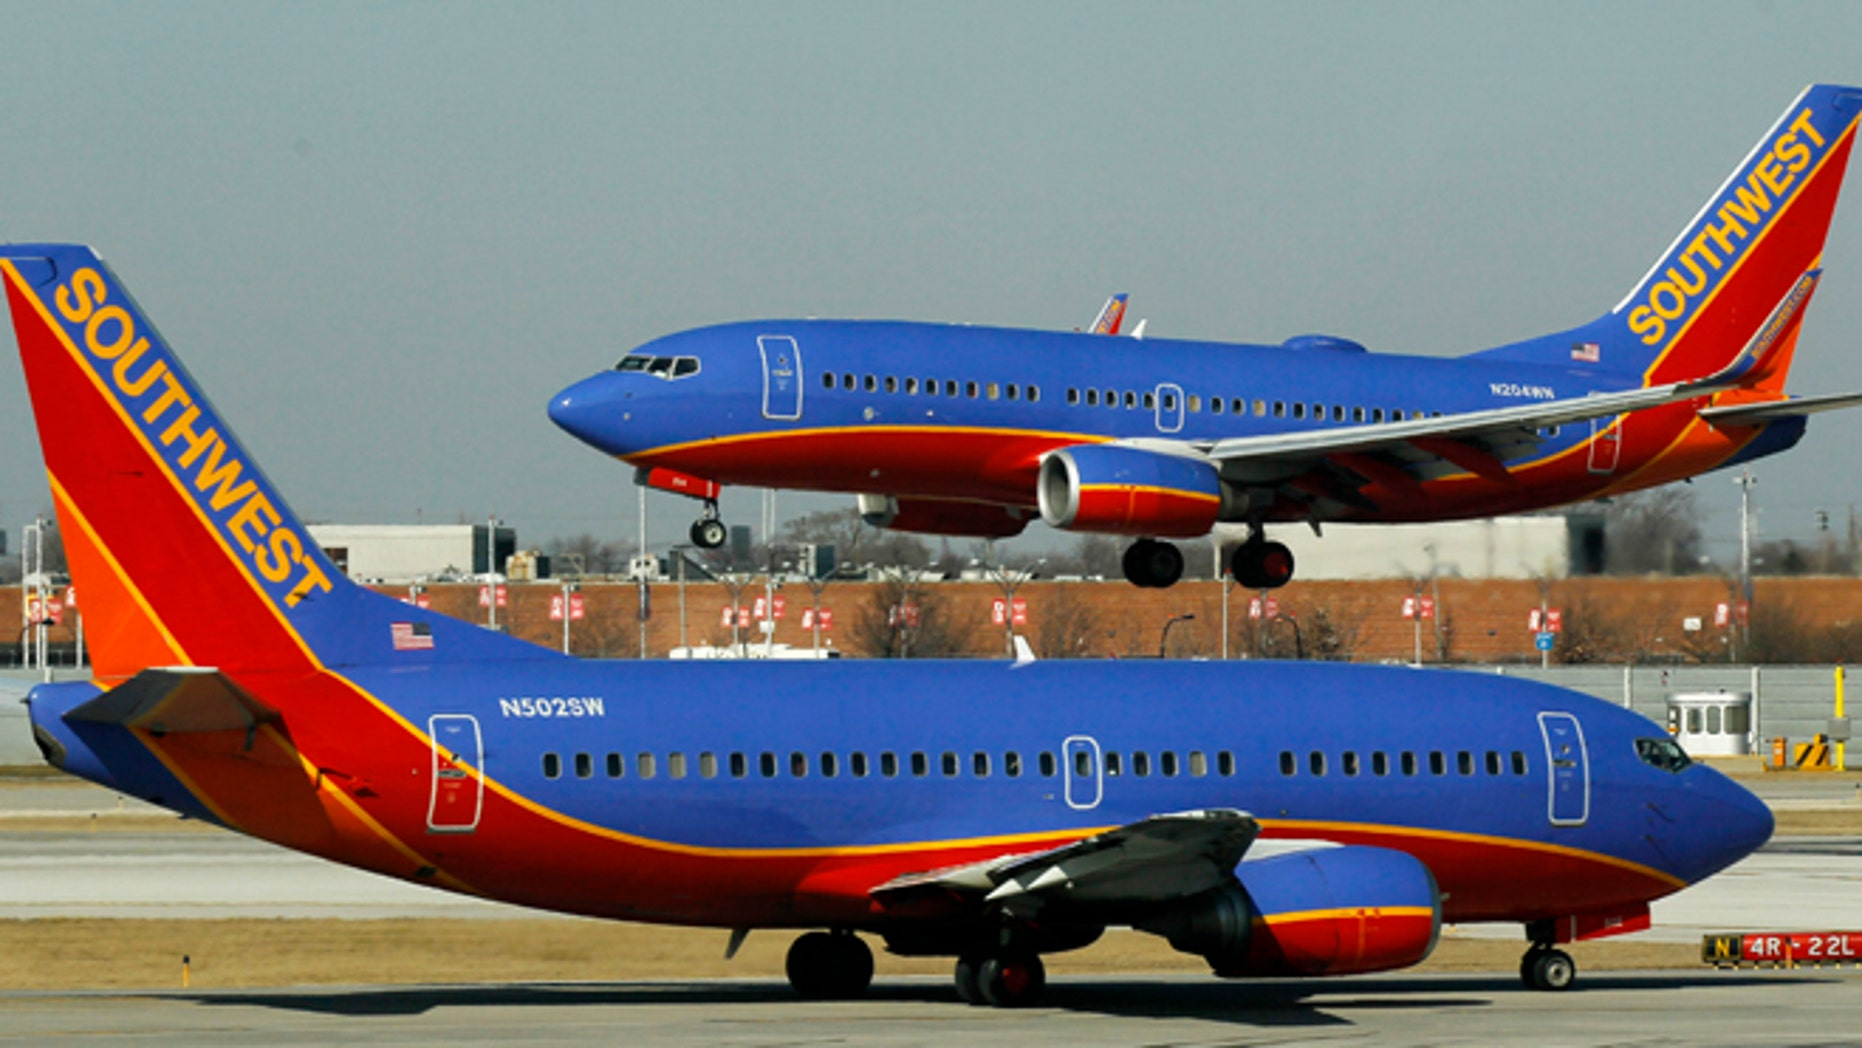 The airline is not releasing the identity of the traveler with measles, a Southwest Airlines spokesman added.